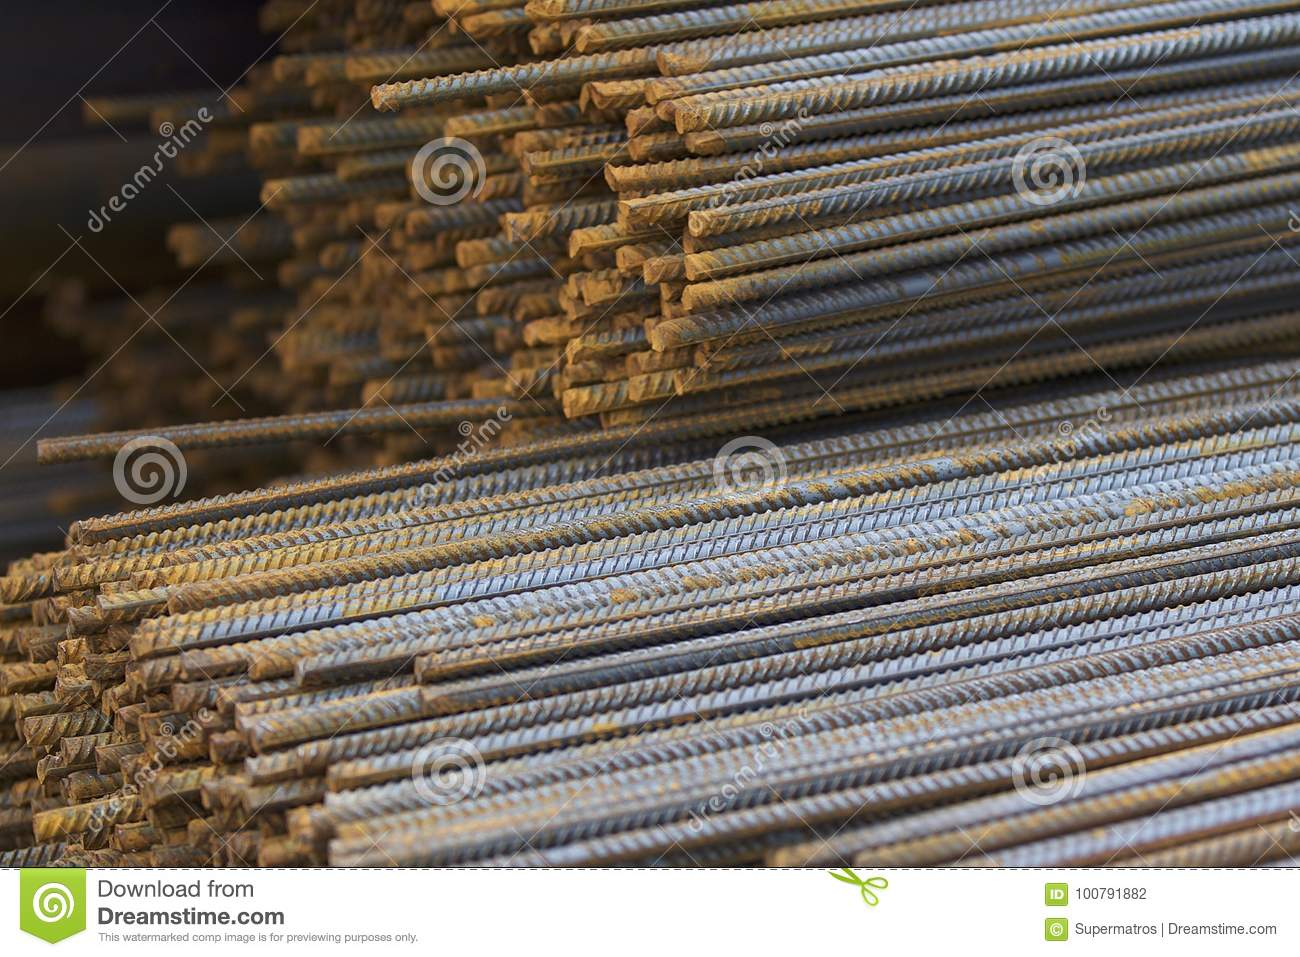 Reinforcing bars with a periodic profile in the packs are stored in the metal products warehouse